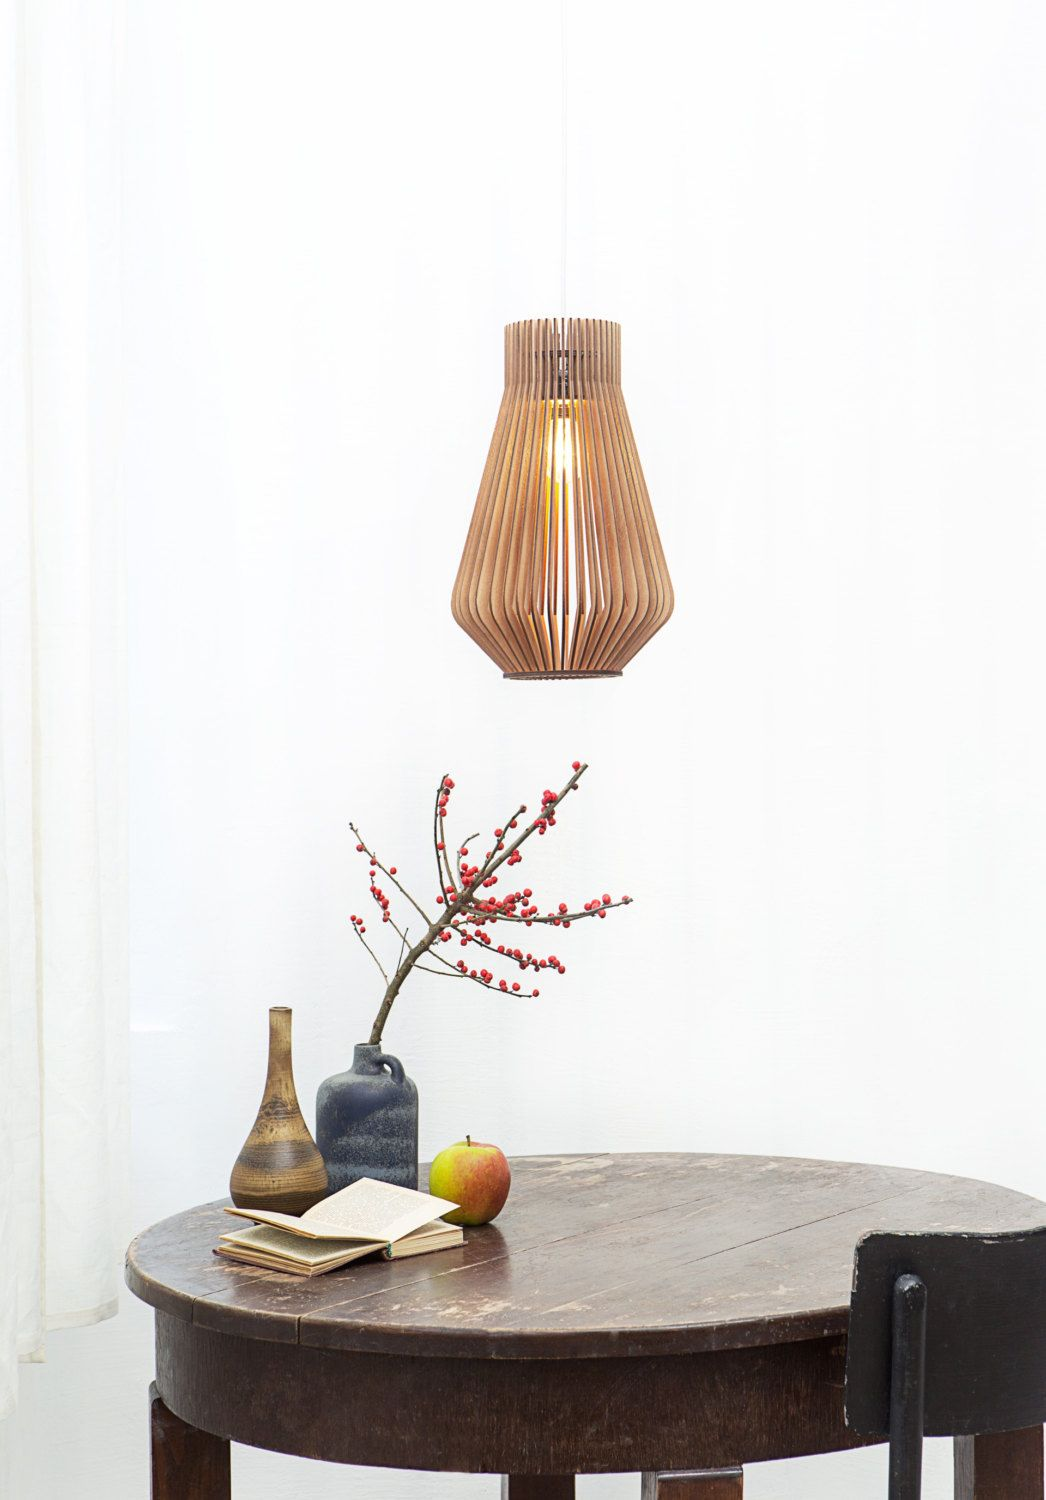 Hängeleuchte Holz Design Scandinavian Style Wooden Hanging Lamp Lighting Design Lamp